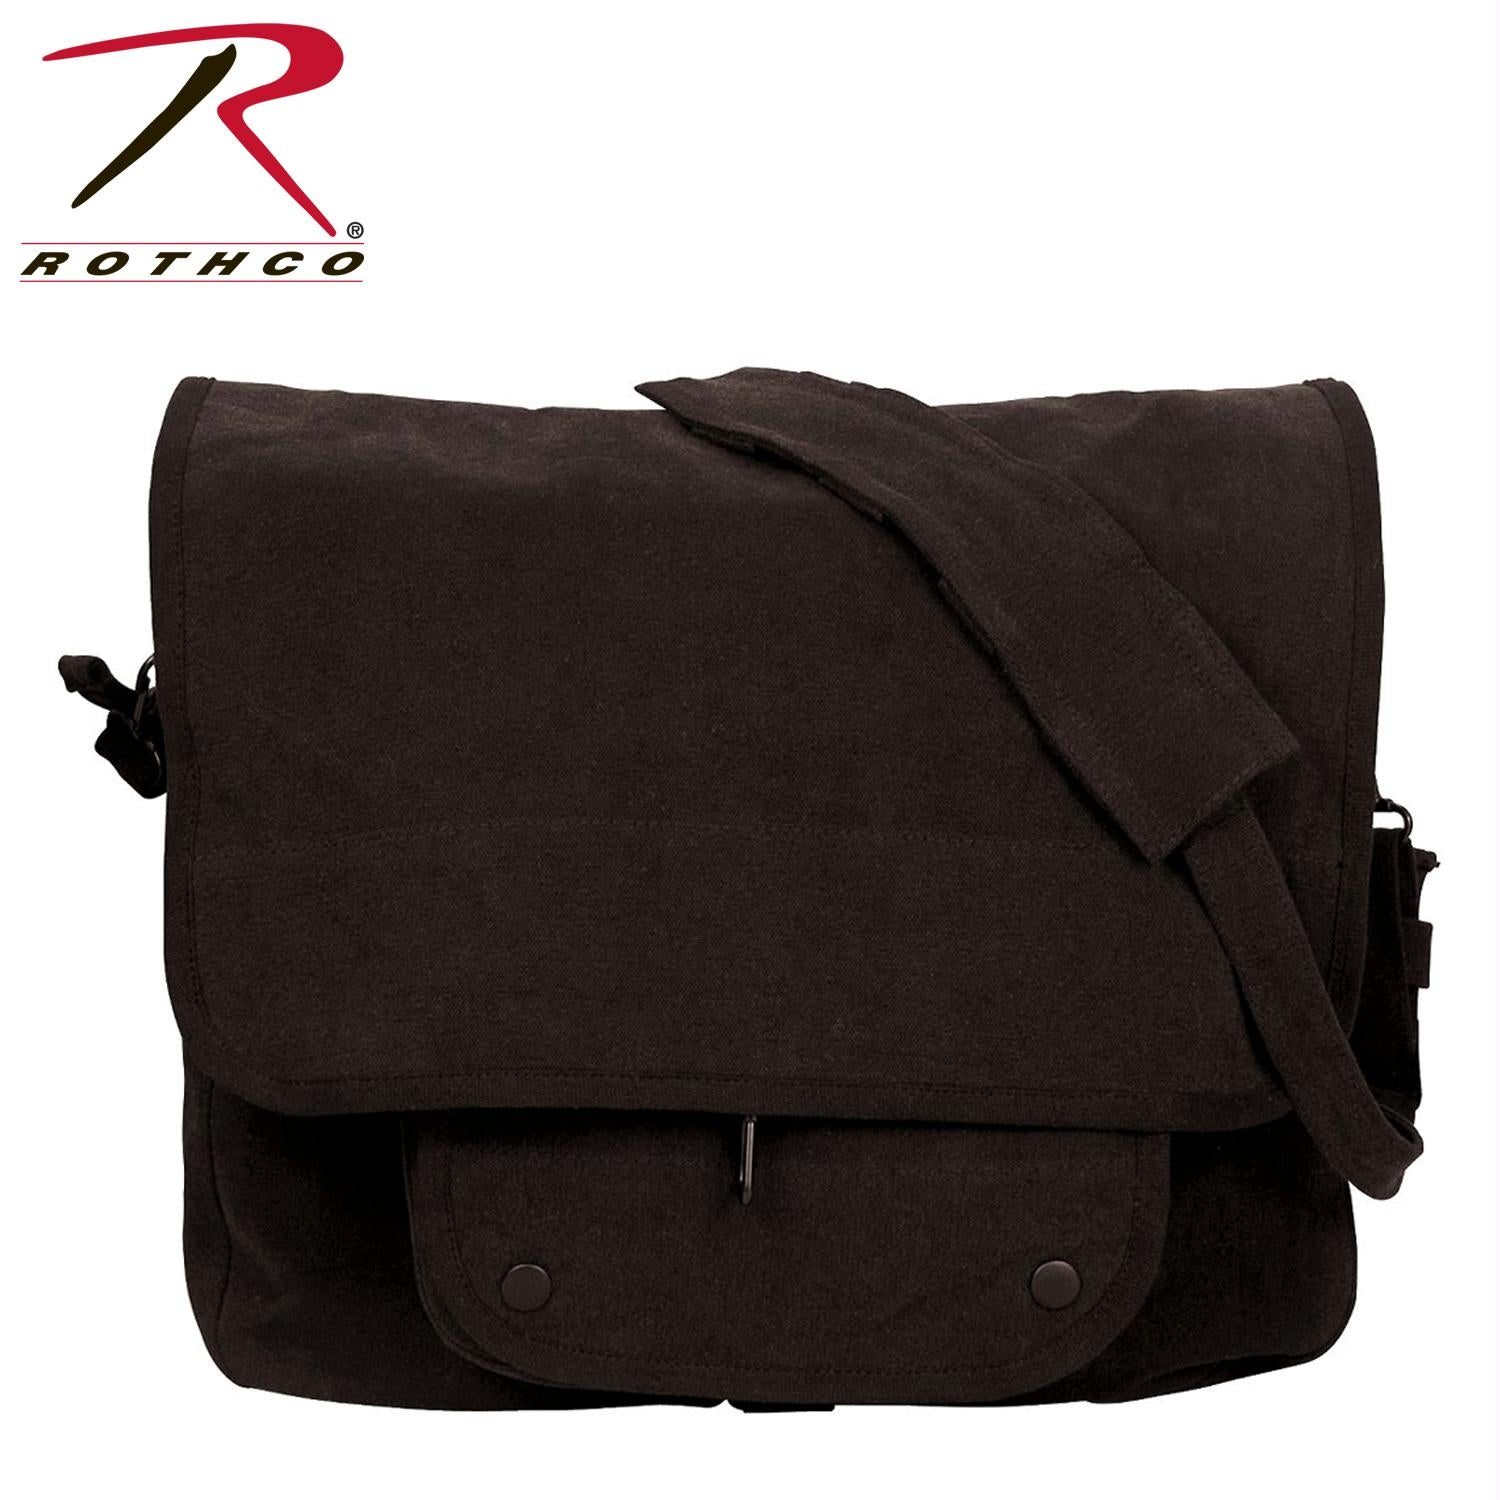 Rothco Vintage Canvas Paratrooper Bag - Black